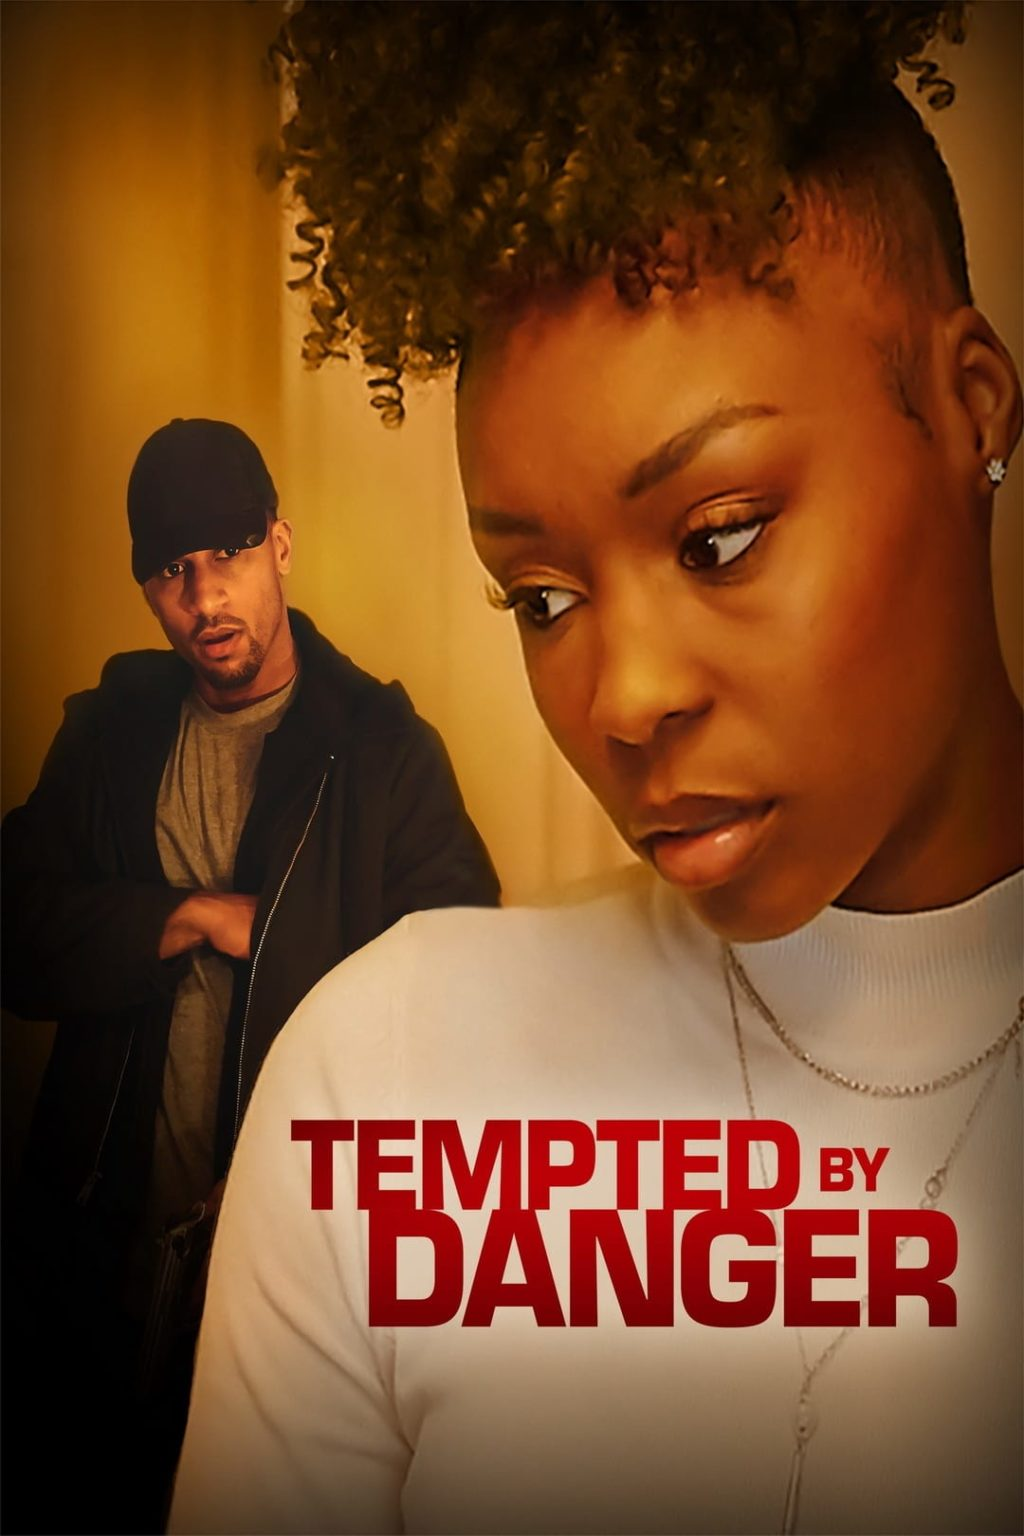 Tempted by Danger 2020 English 480p | 720p HDRip x264 AAC 280MB | 800MB Download